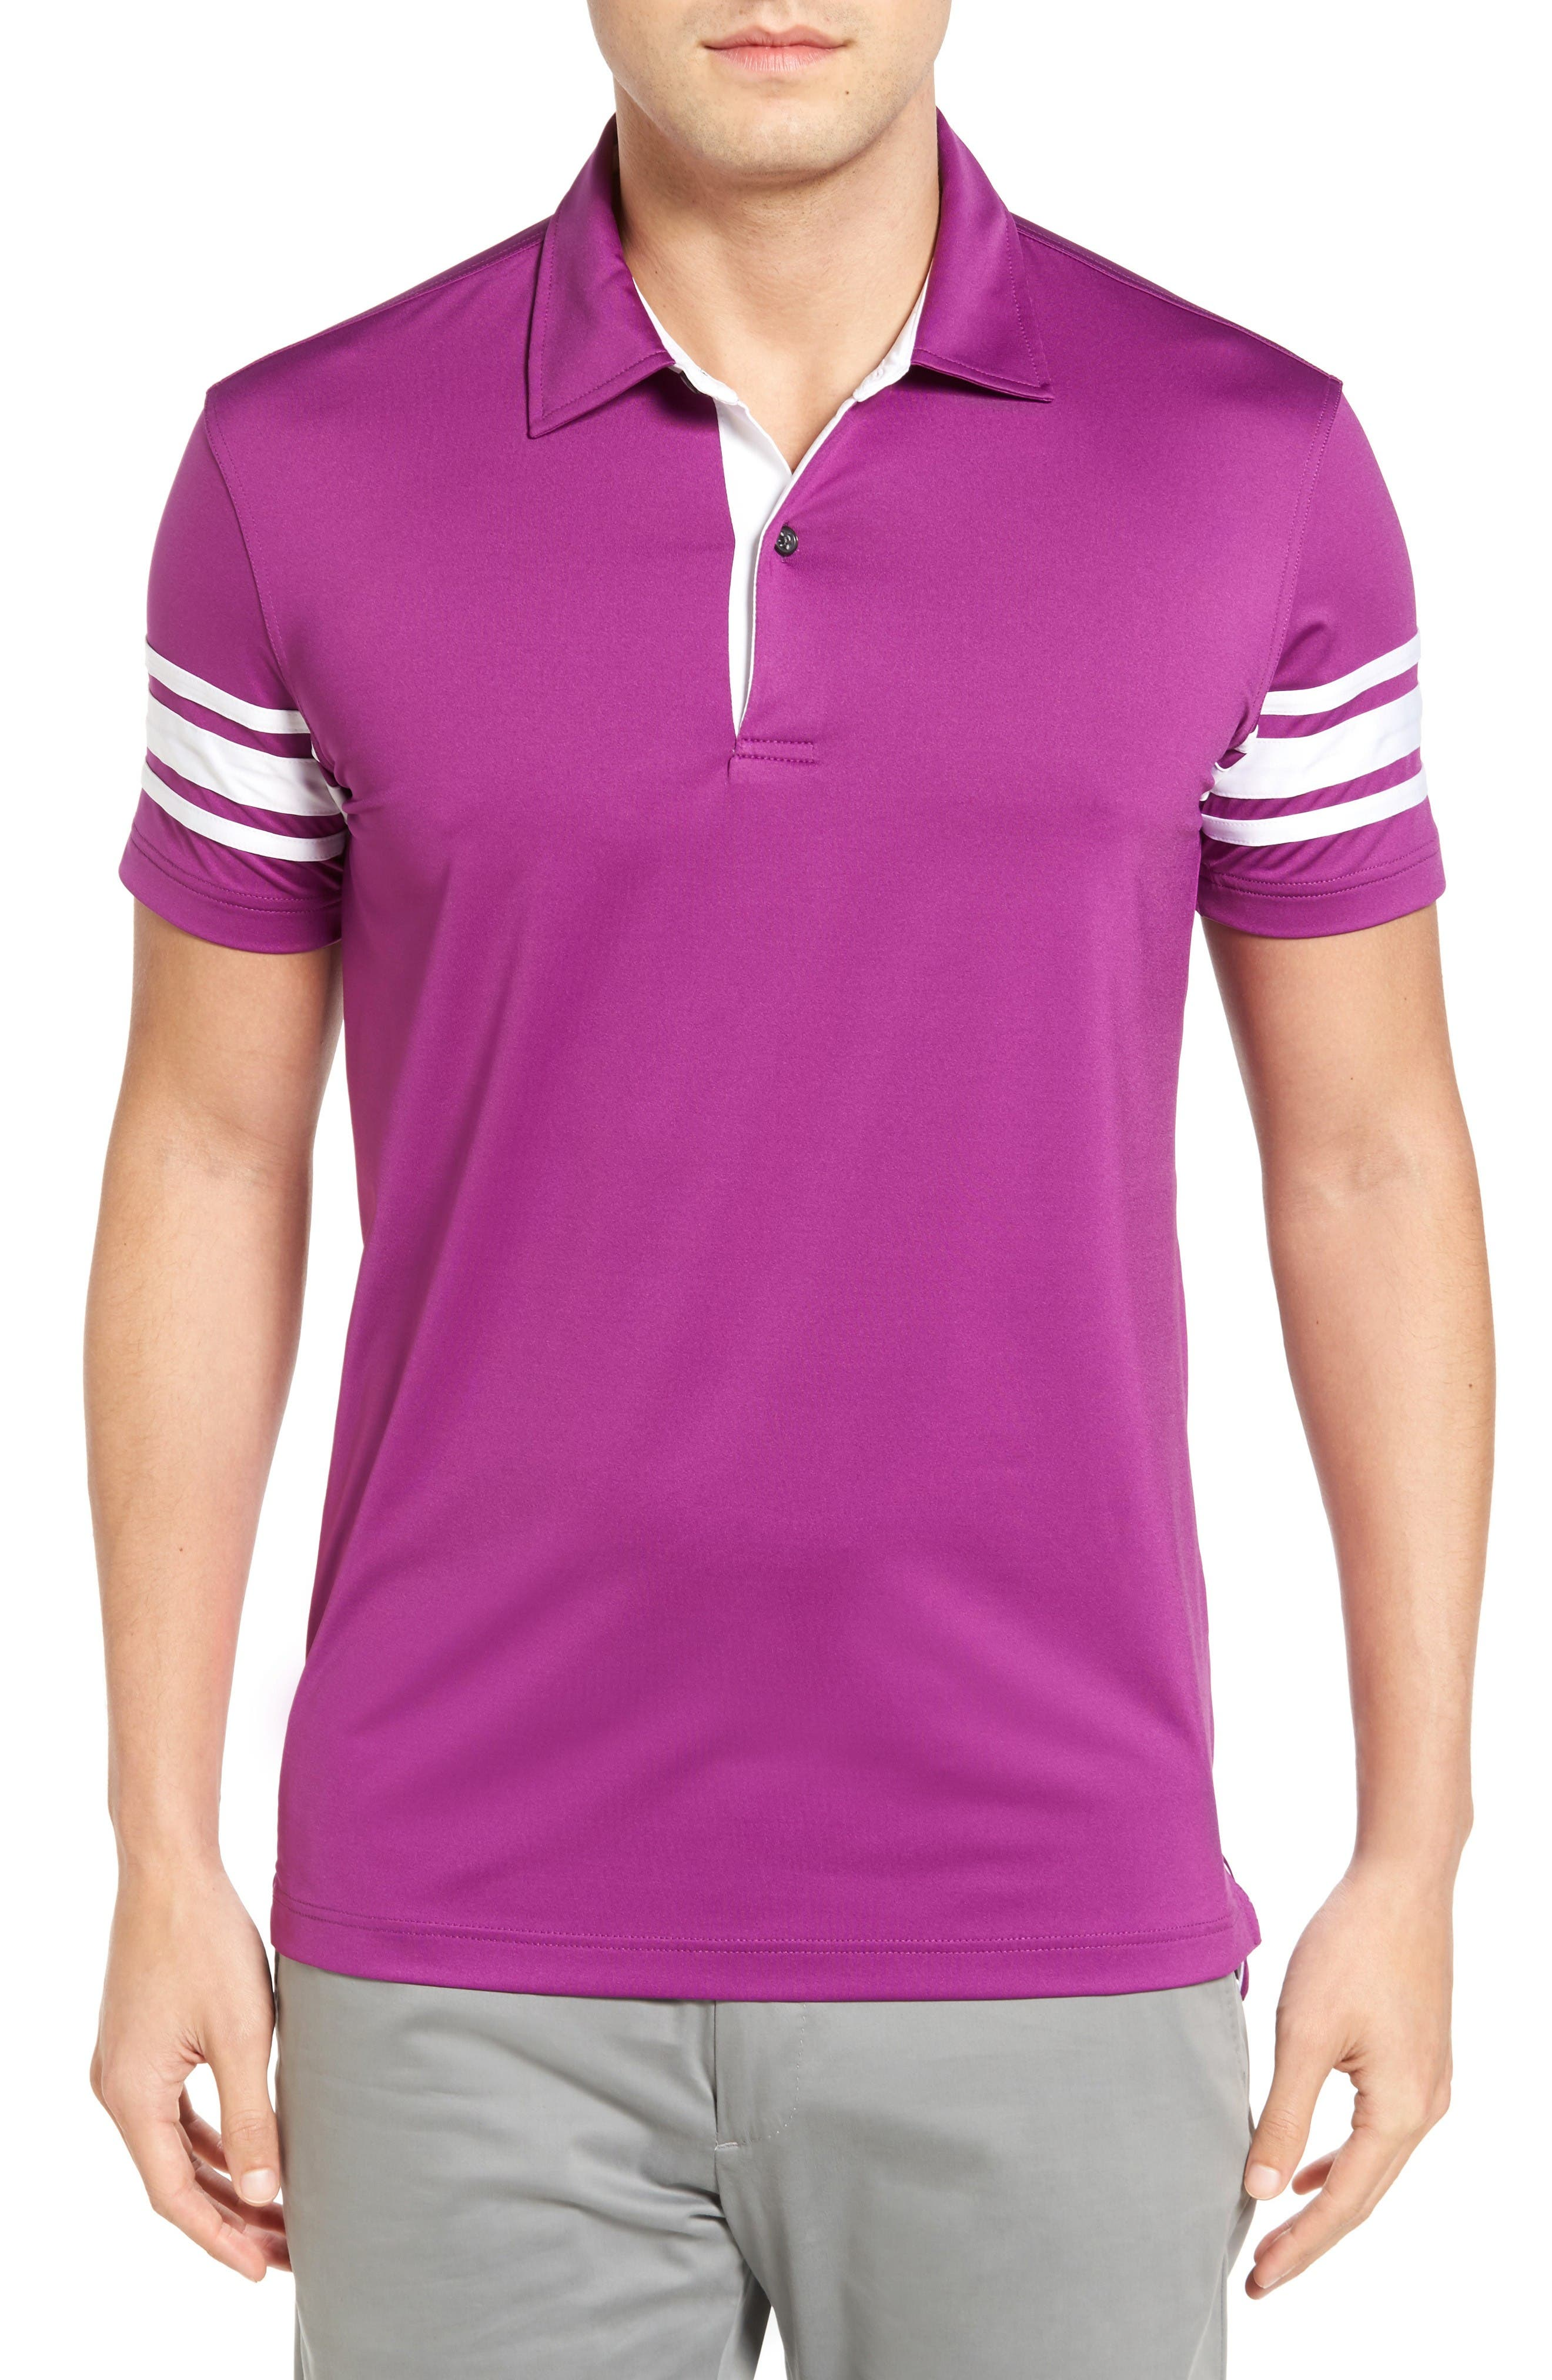 Bobby Jones Liberty Tech Golf Polo